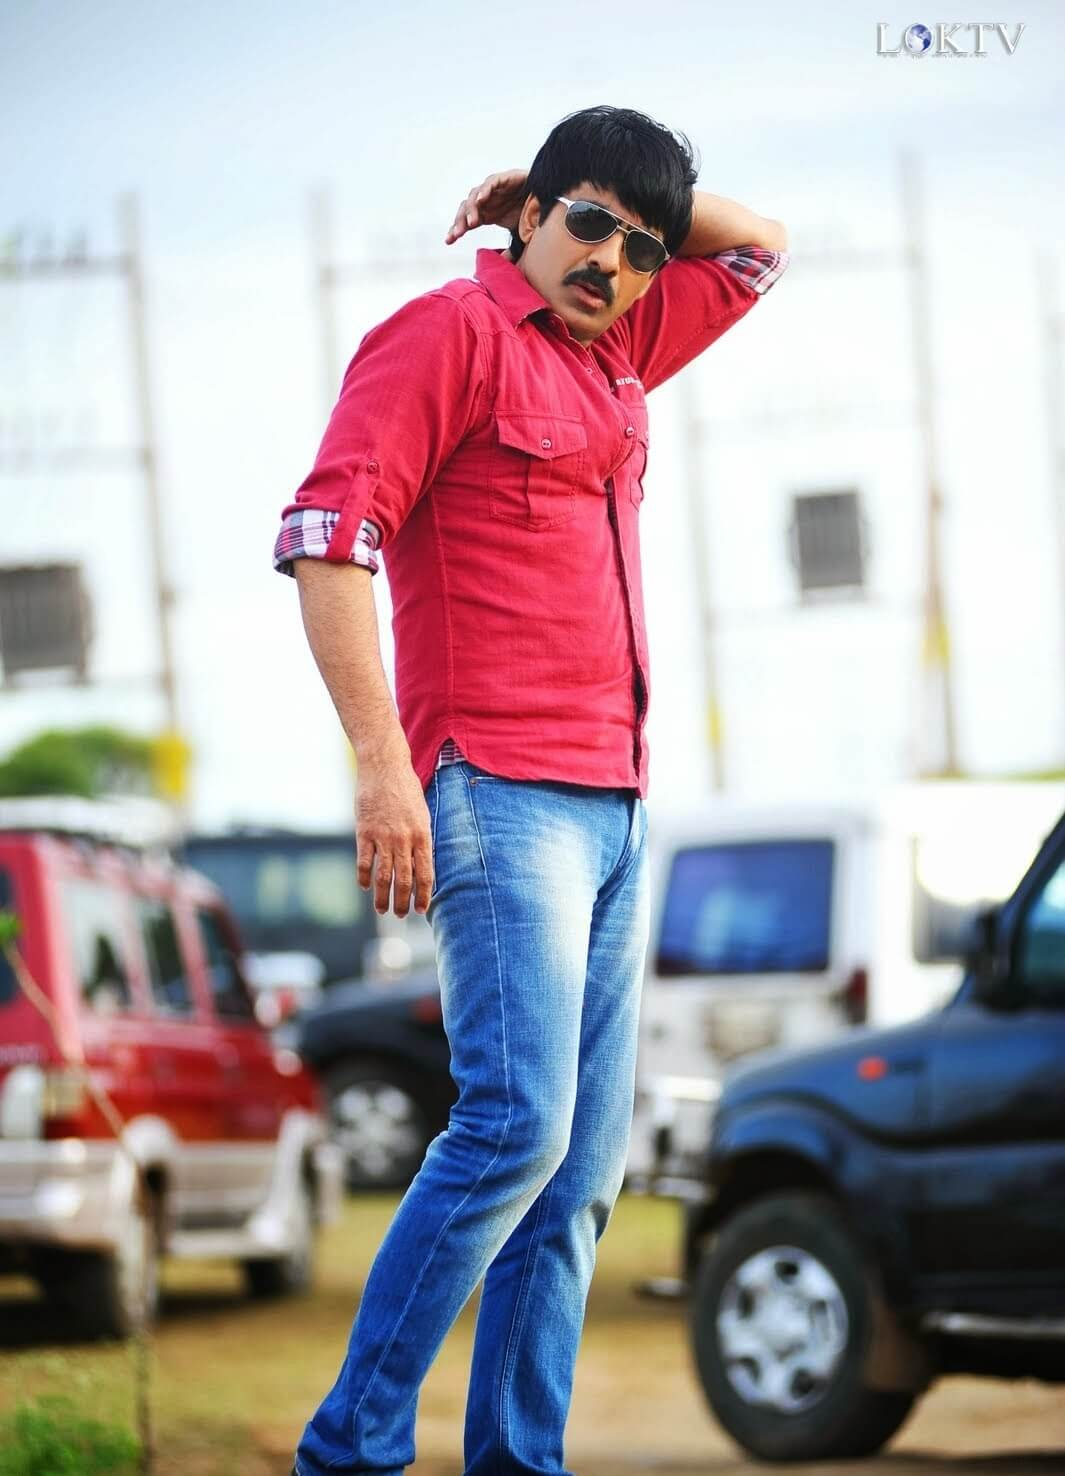 Ravi Teja Movie, Photos(images), Date Of Birth, Family, Brother, Height, Biography, Net Worth, Age, Wife, Details, Education, Instagram, Twitter, Wiki, Imdb, Facebook, Hairstyle, Youtube (2)